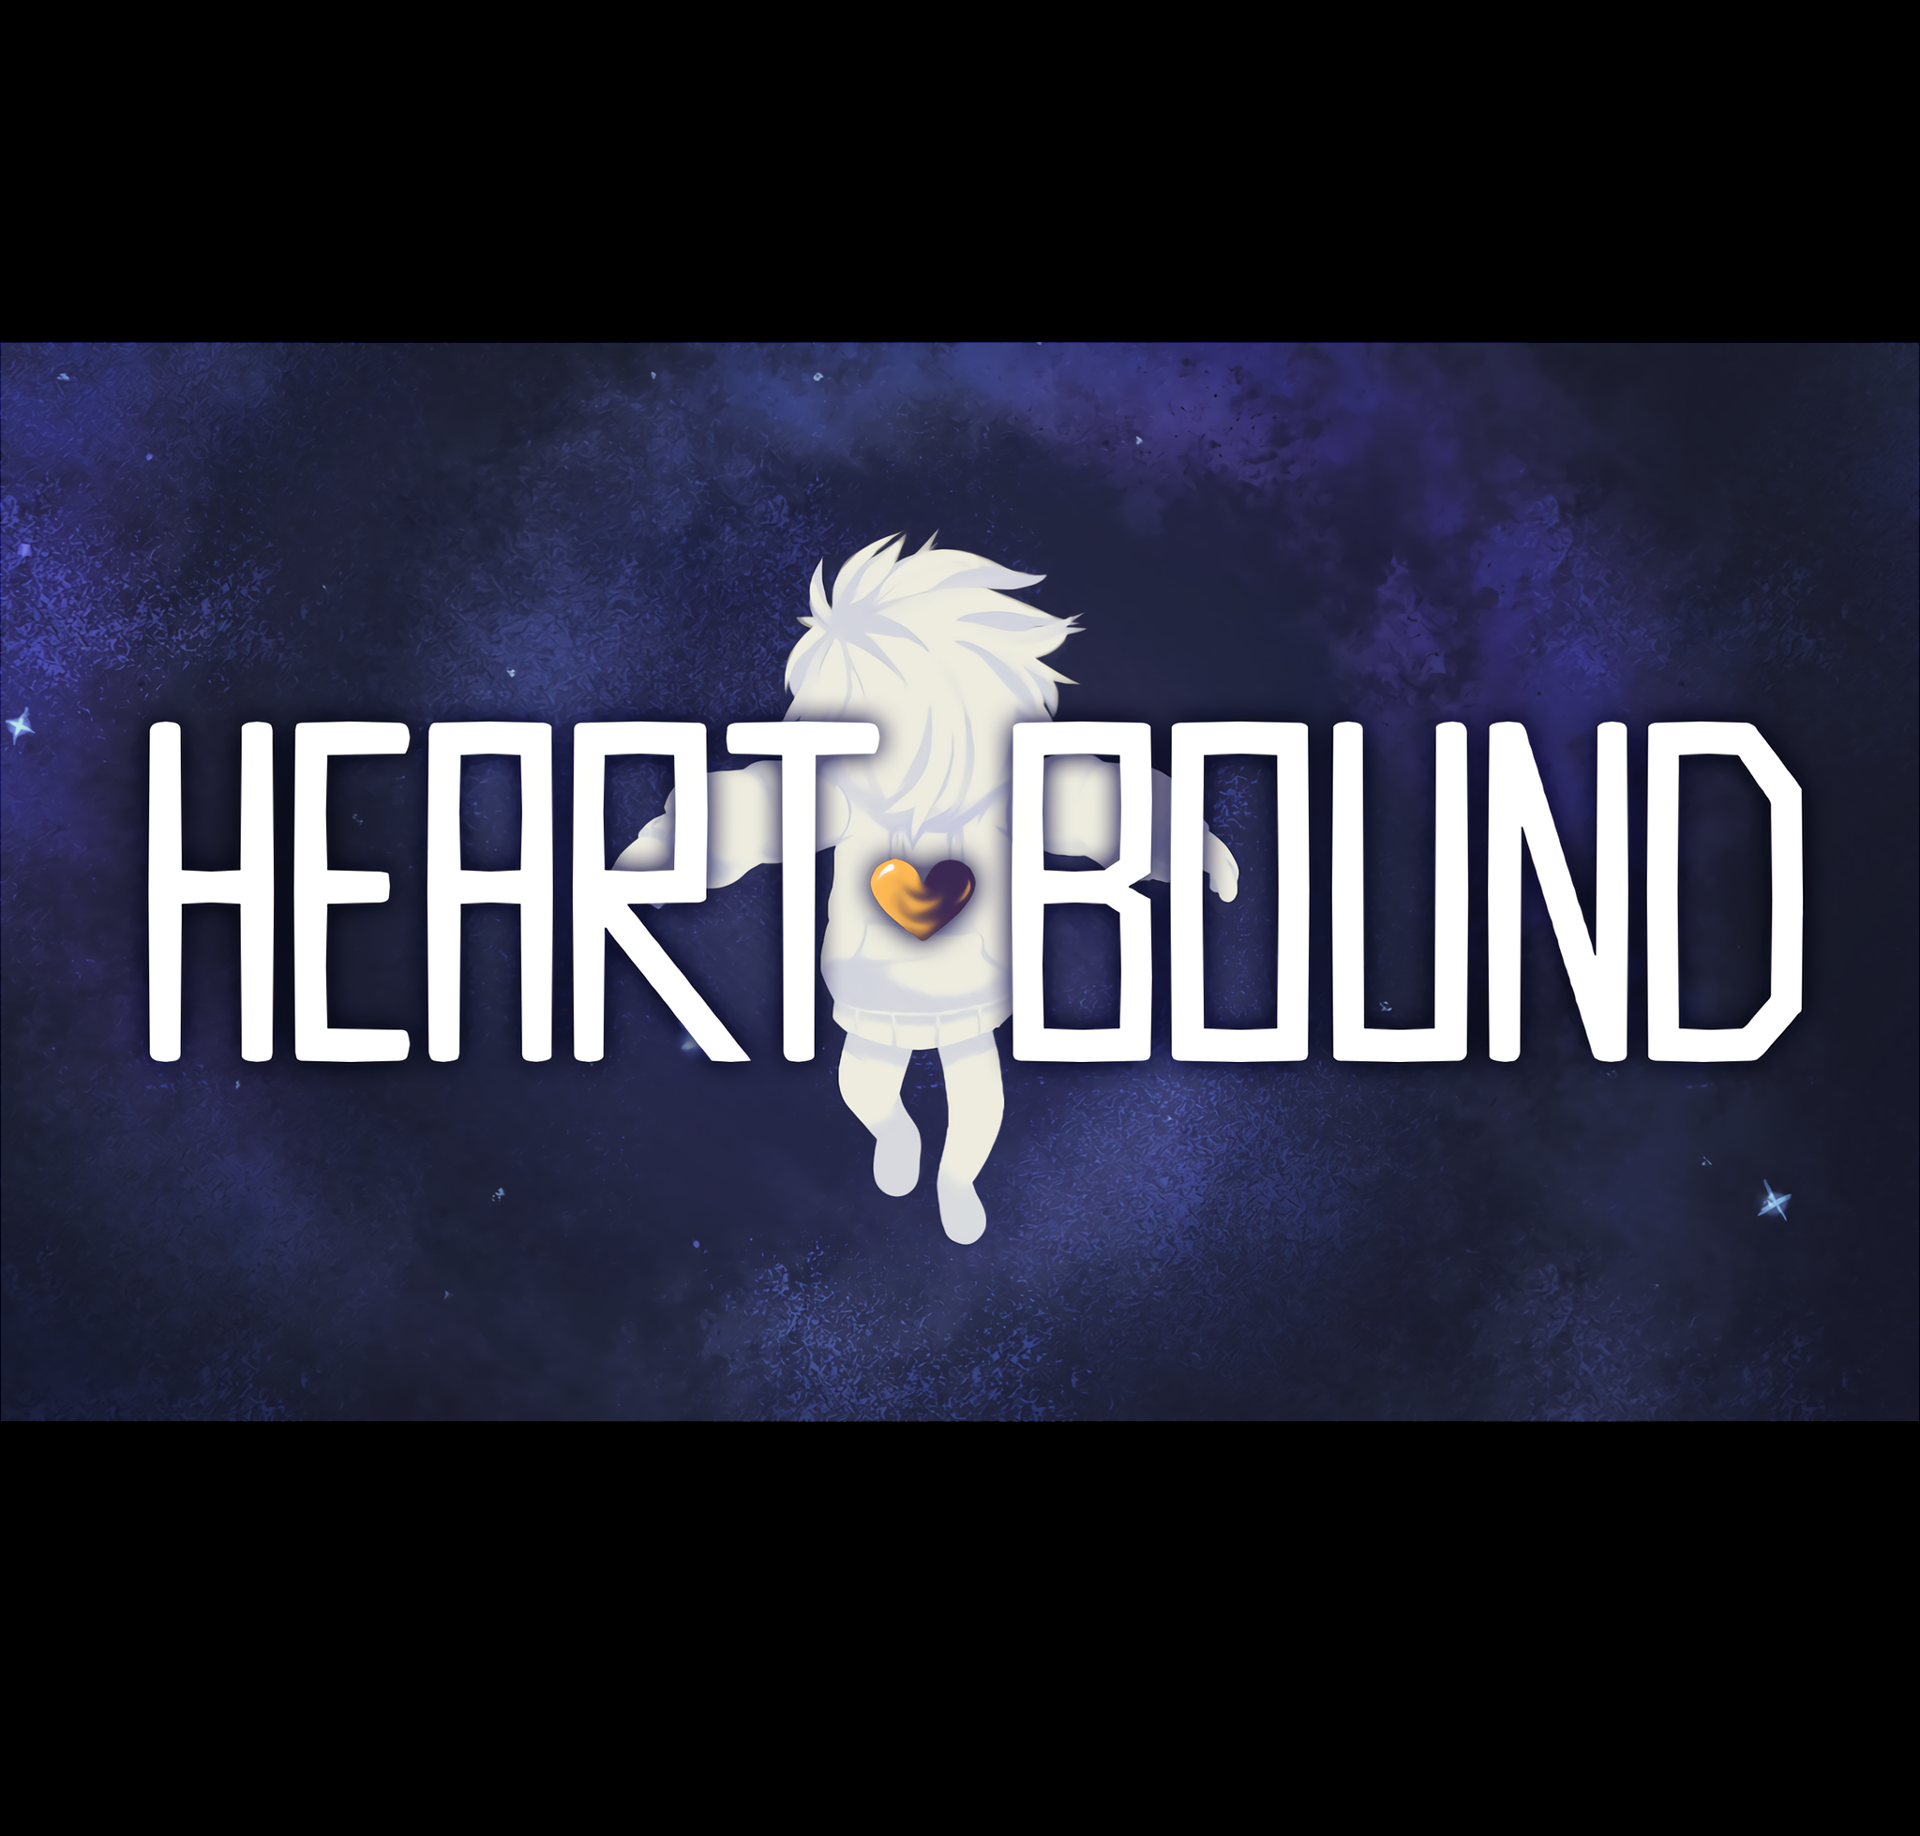 Image of Heartbound - Poster